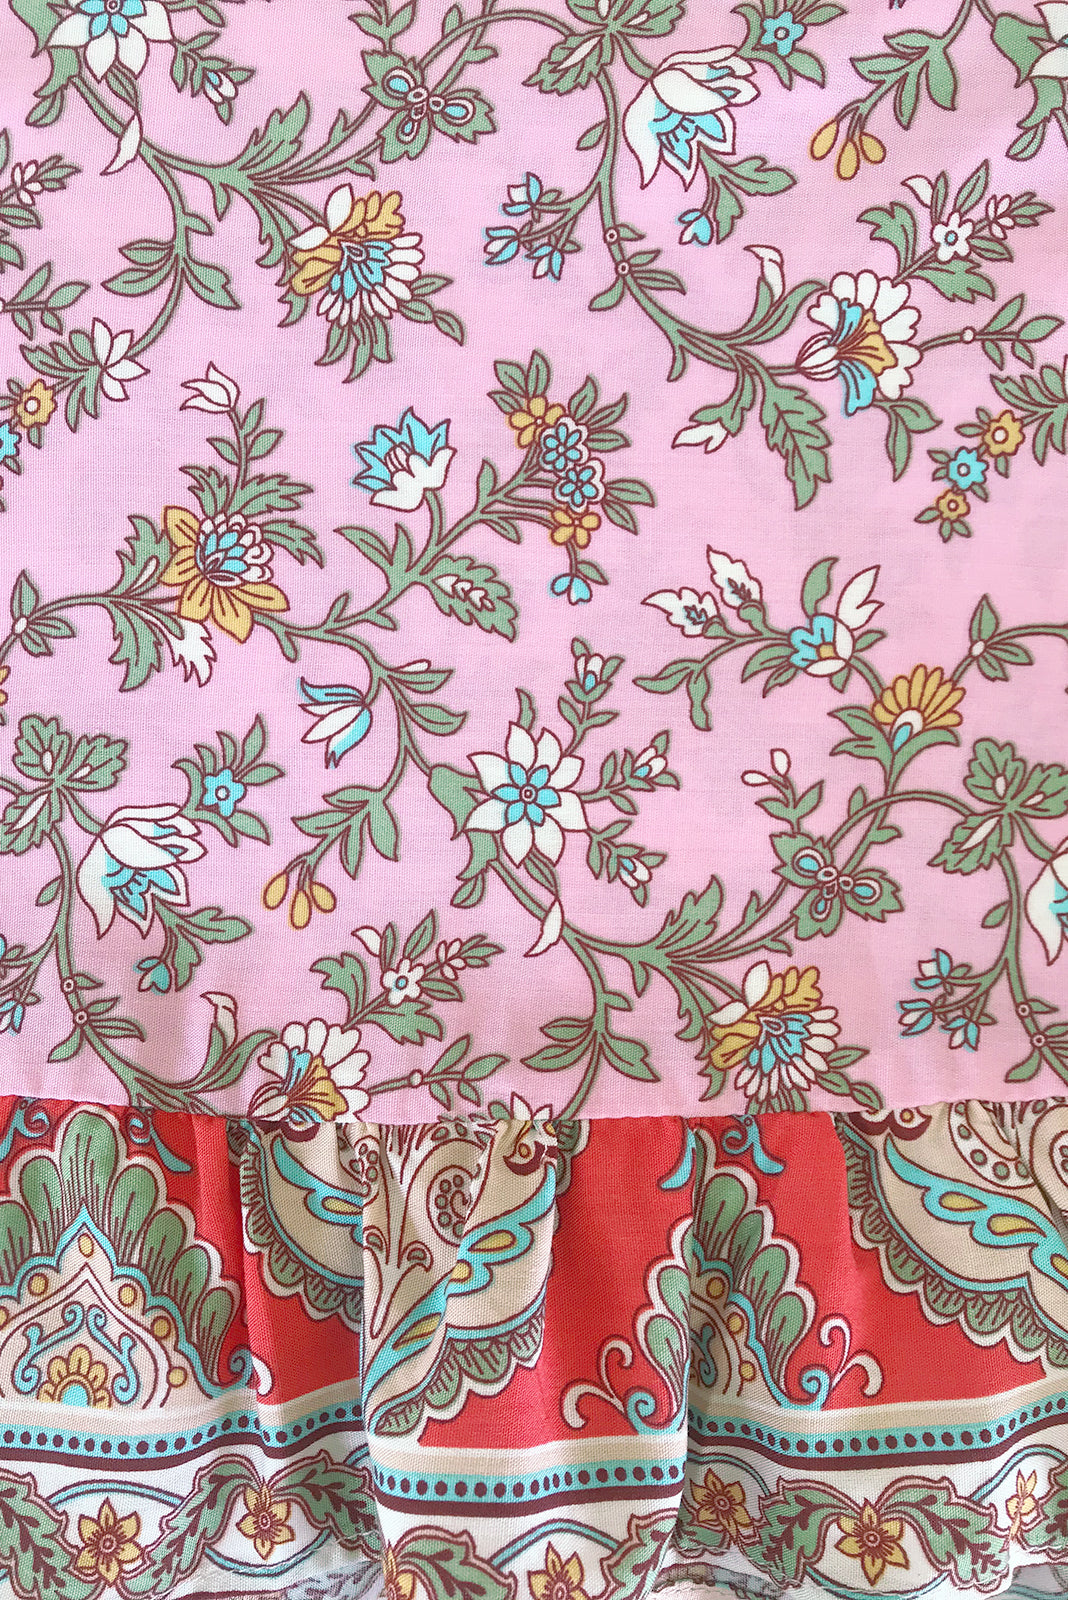 Fabric Swatch of Sea Coast Blouse Strawberry Bohemian featuring 100% viscose in pale pink base with vintage print and watermelon toned border detail.